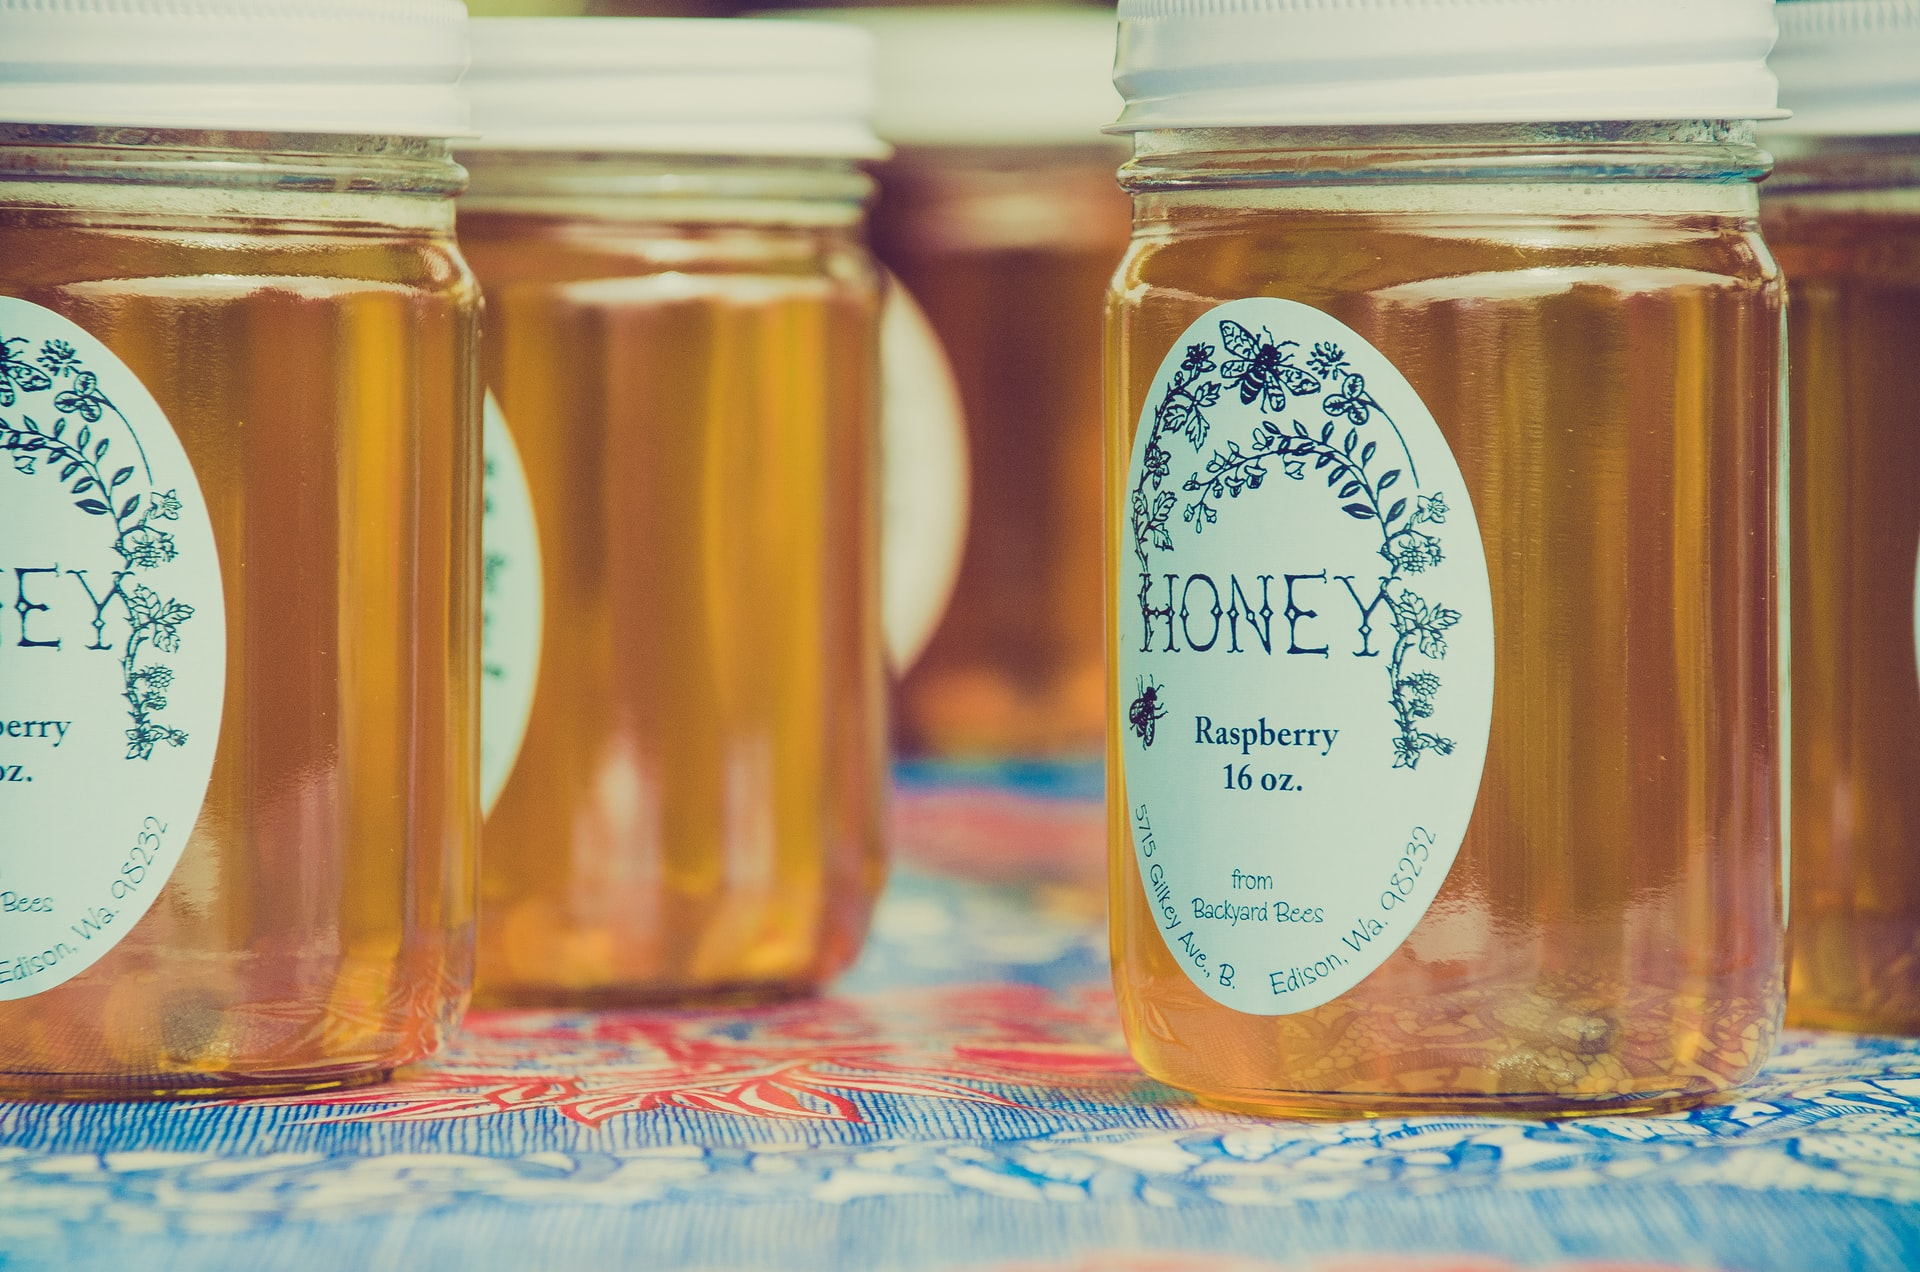 Photo of jars of honey